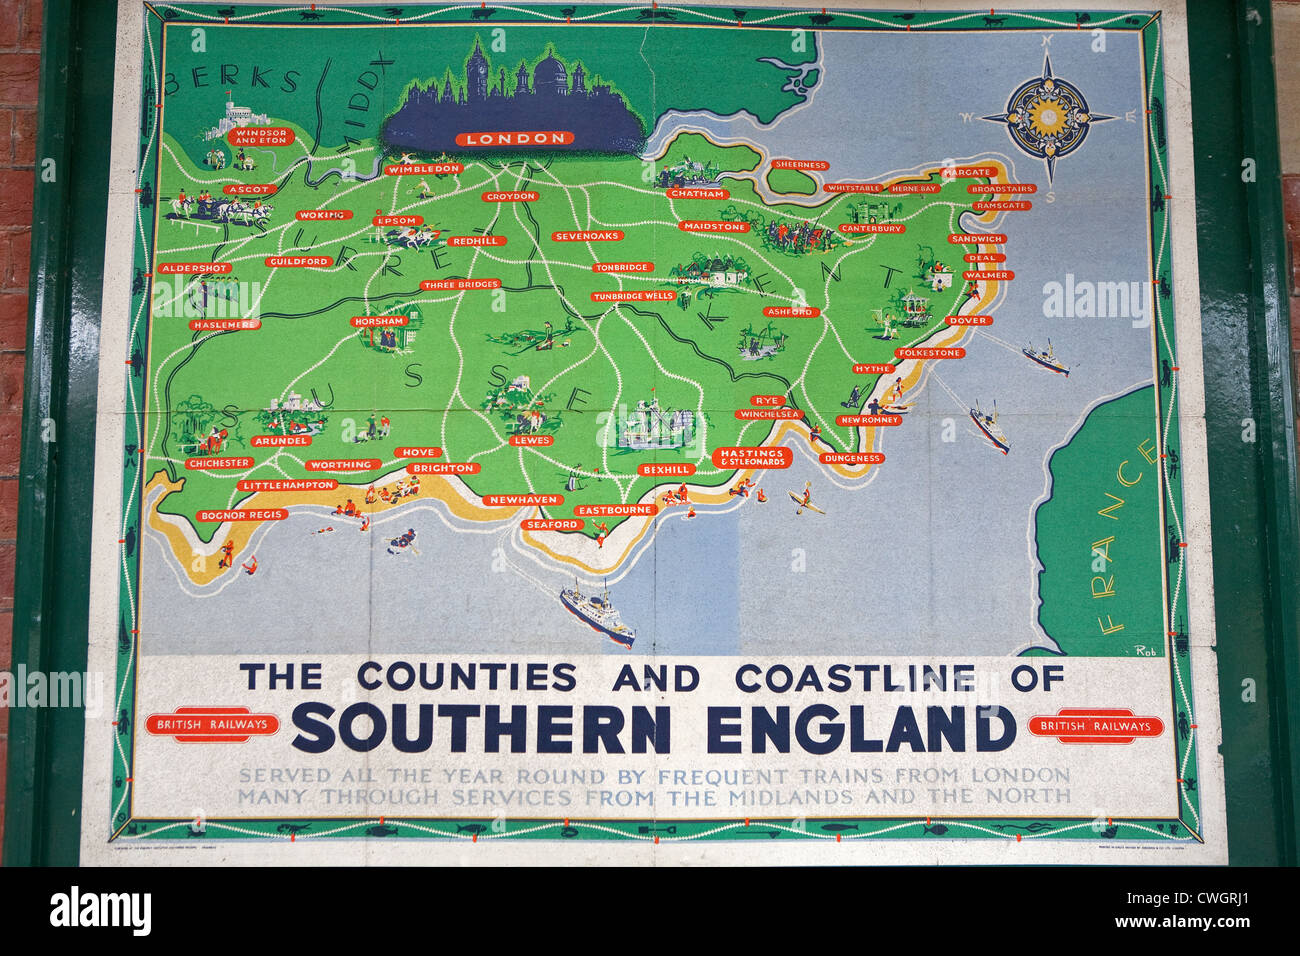 An old railway map of the counties and coastline of Southern England in Horsted Keynes Railway station on the Bluebell - Stock Image